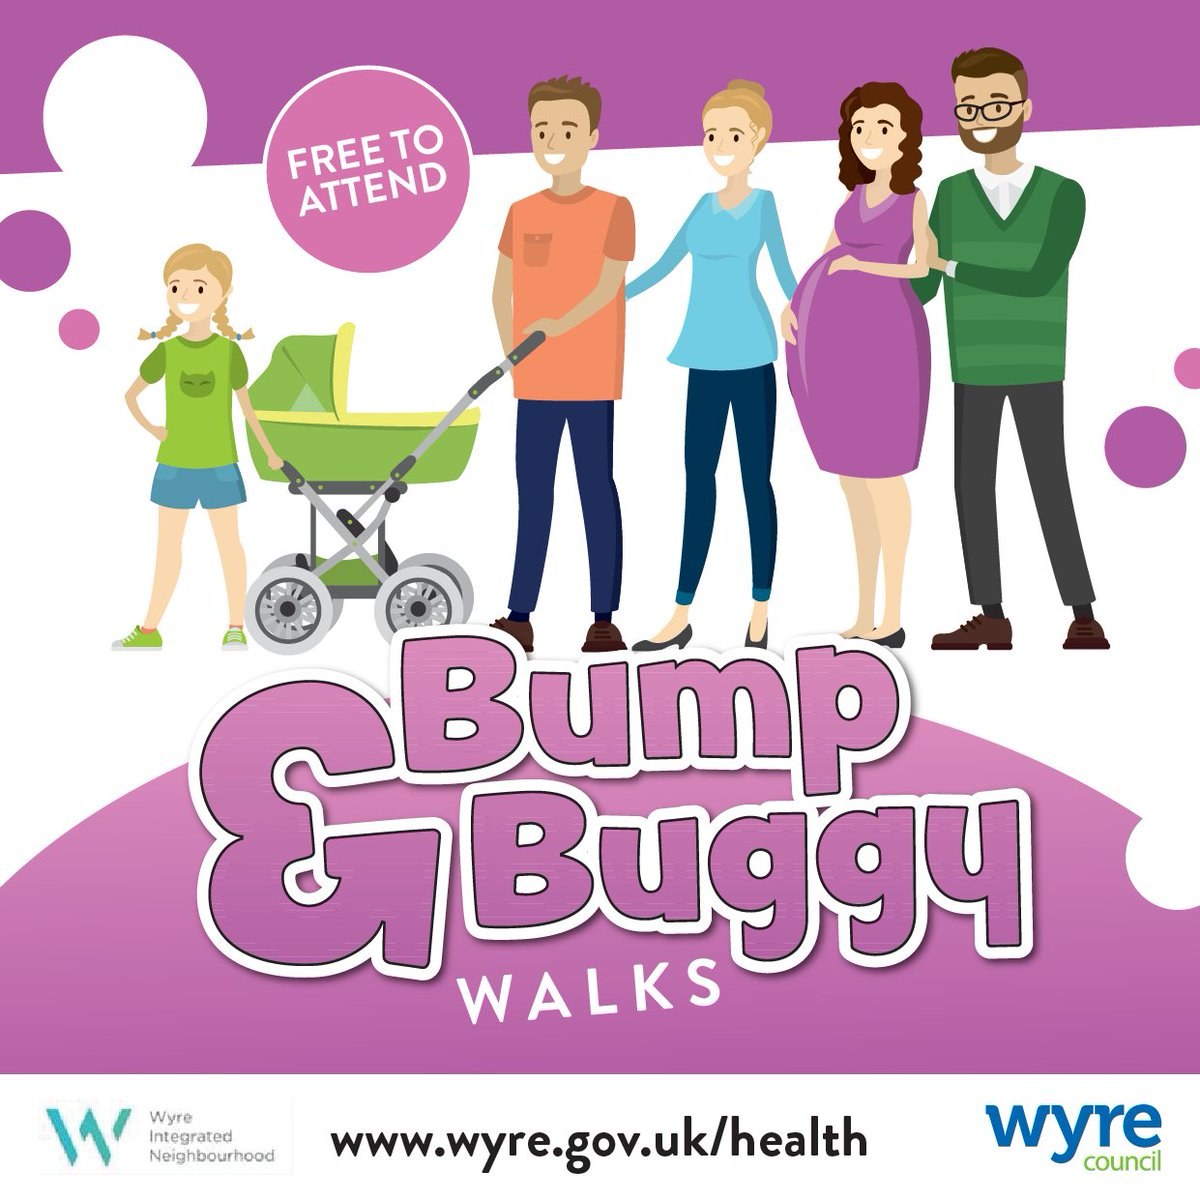 Join our new Bump and Buggy walks from the Wyreside café at the Stanah country park. Free to attend, no need to book just turn up for a 10.30am start. Every 1st and 3rd Thursday from March to September. Stay for a chat and a drink afterwards #HealthierWyre #newparents #Thorntonpic.twitter.com/VlTA4eLOeo